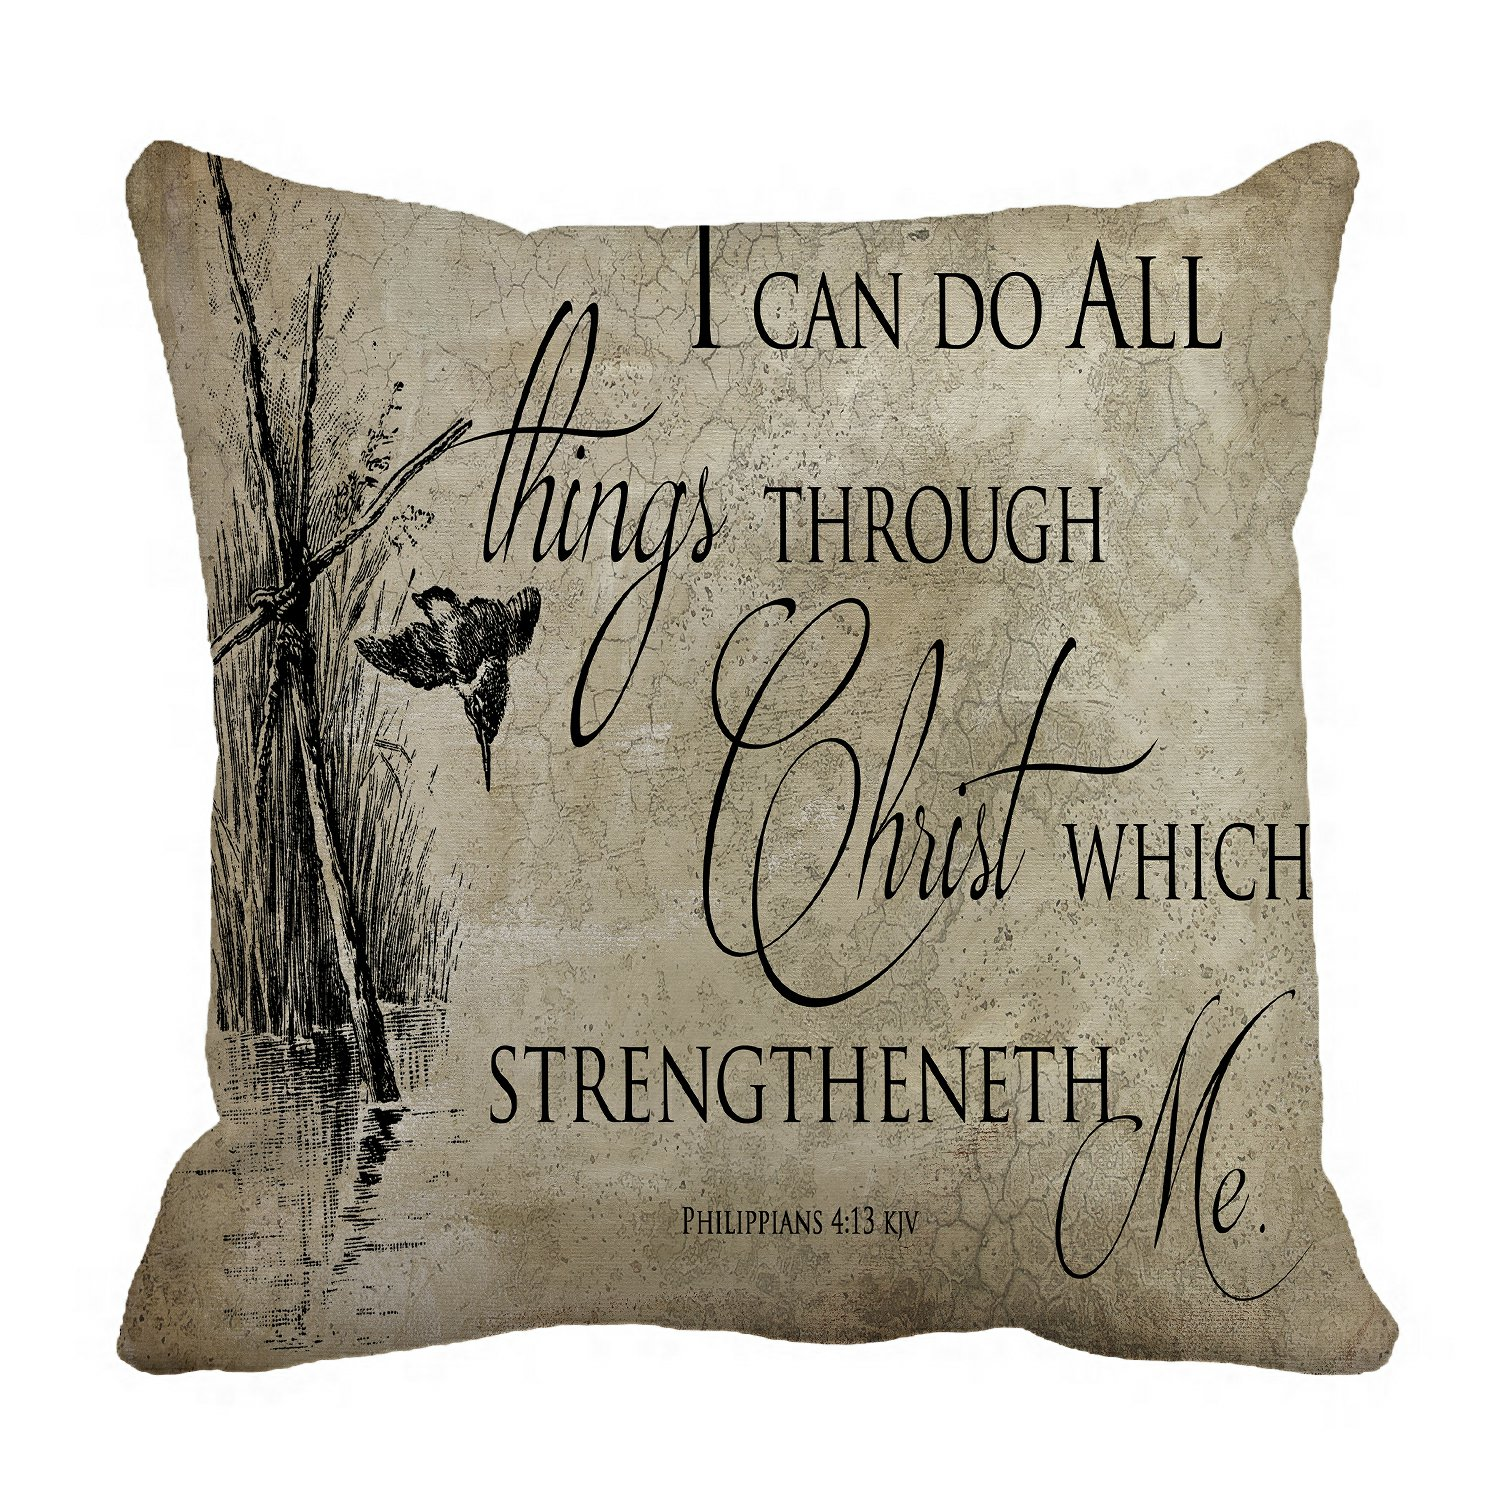 phfzk inspirational pillow case bible verse pillowcase throw pillow cushion cover two sides size 18x18 inches